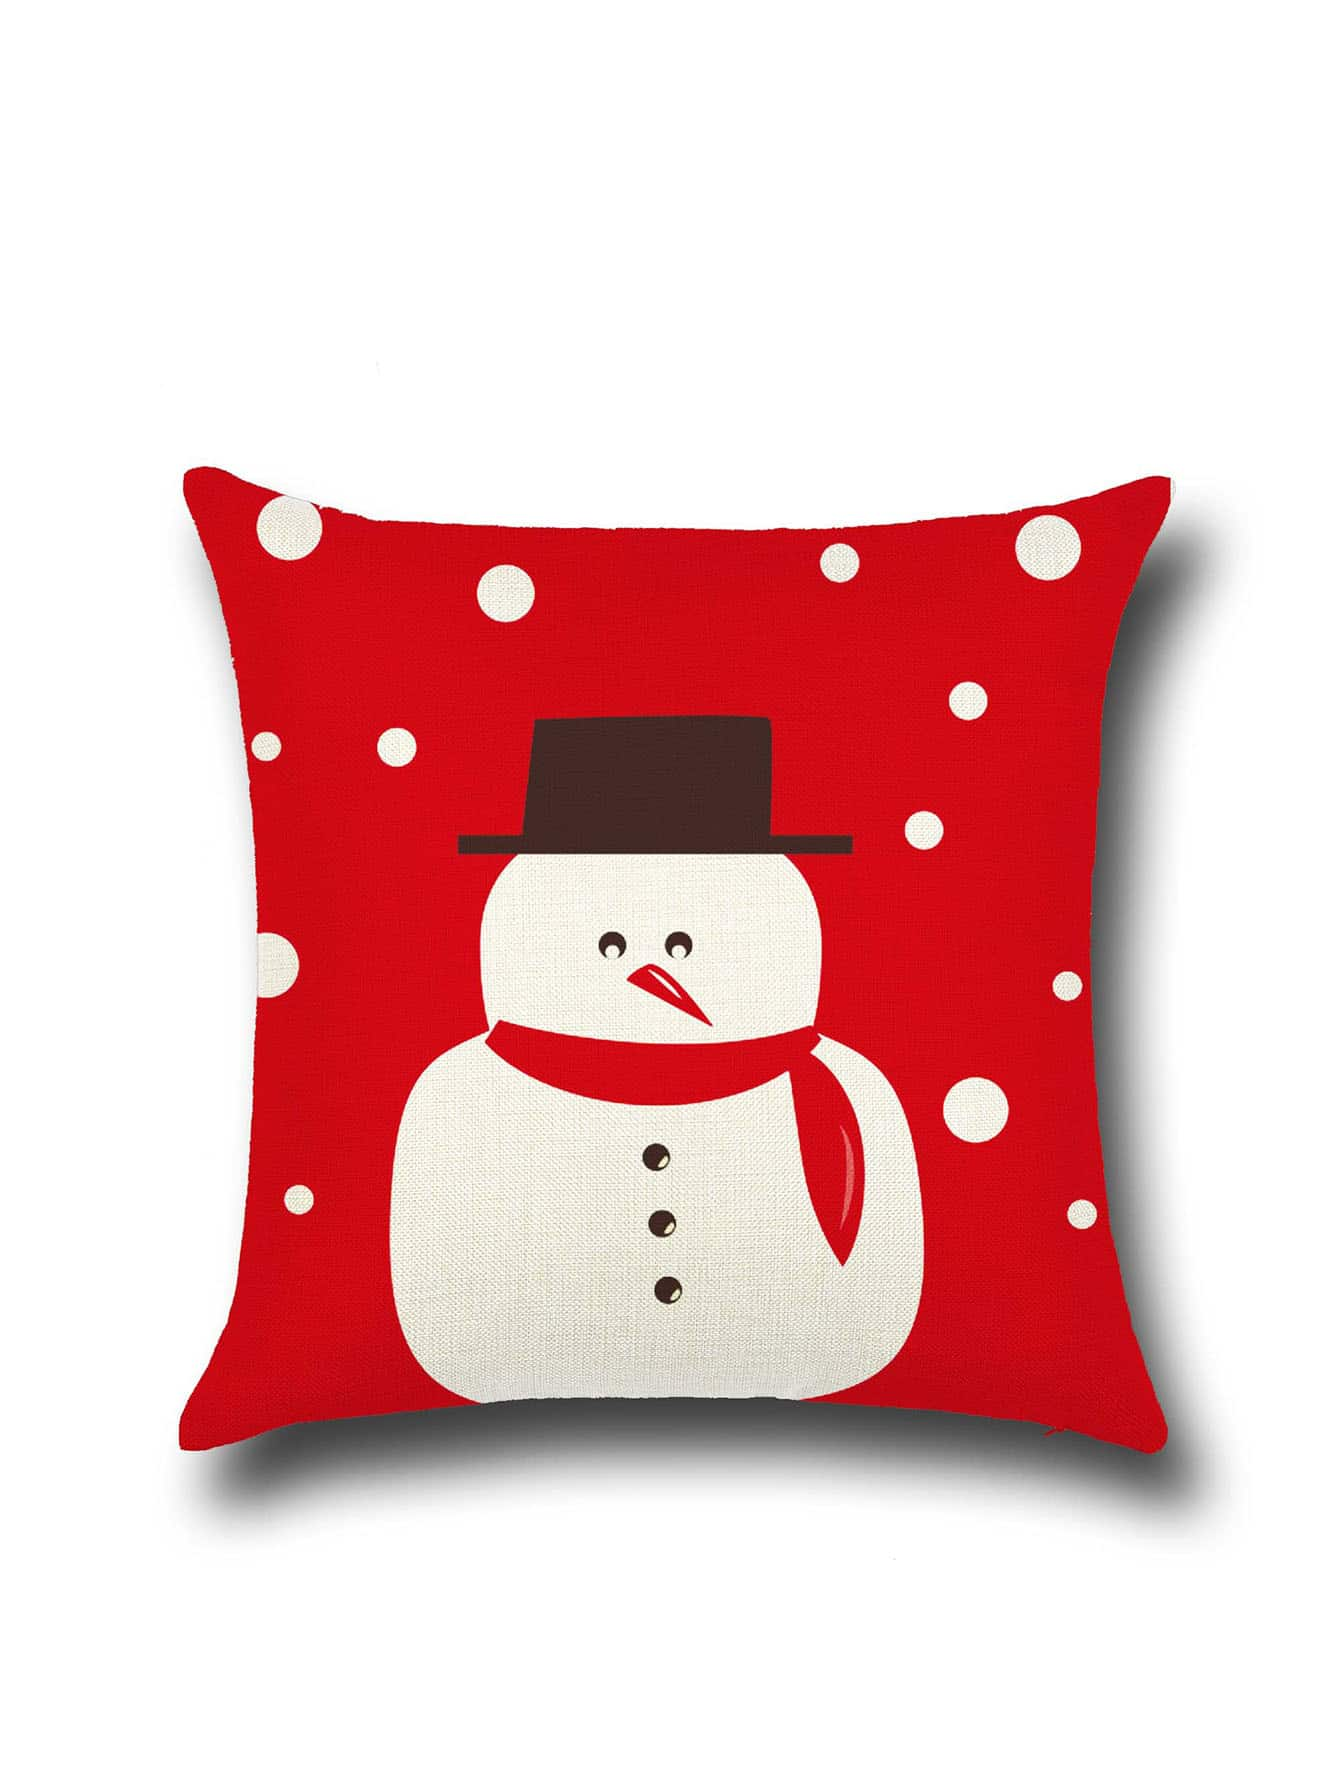 Red Christmas Snowman Print Pillowcase CoverRed Christmas Snowman Print Pillowcase Cover<br><br>color: Red<br>size: None